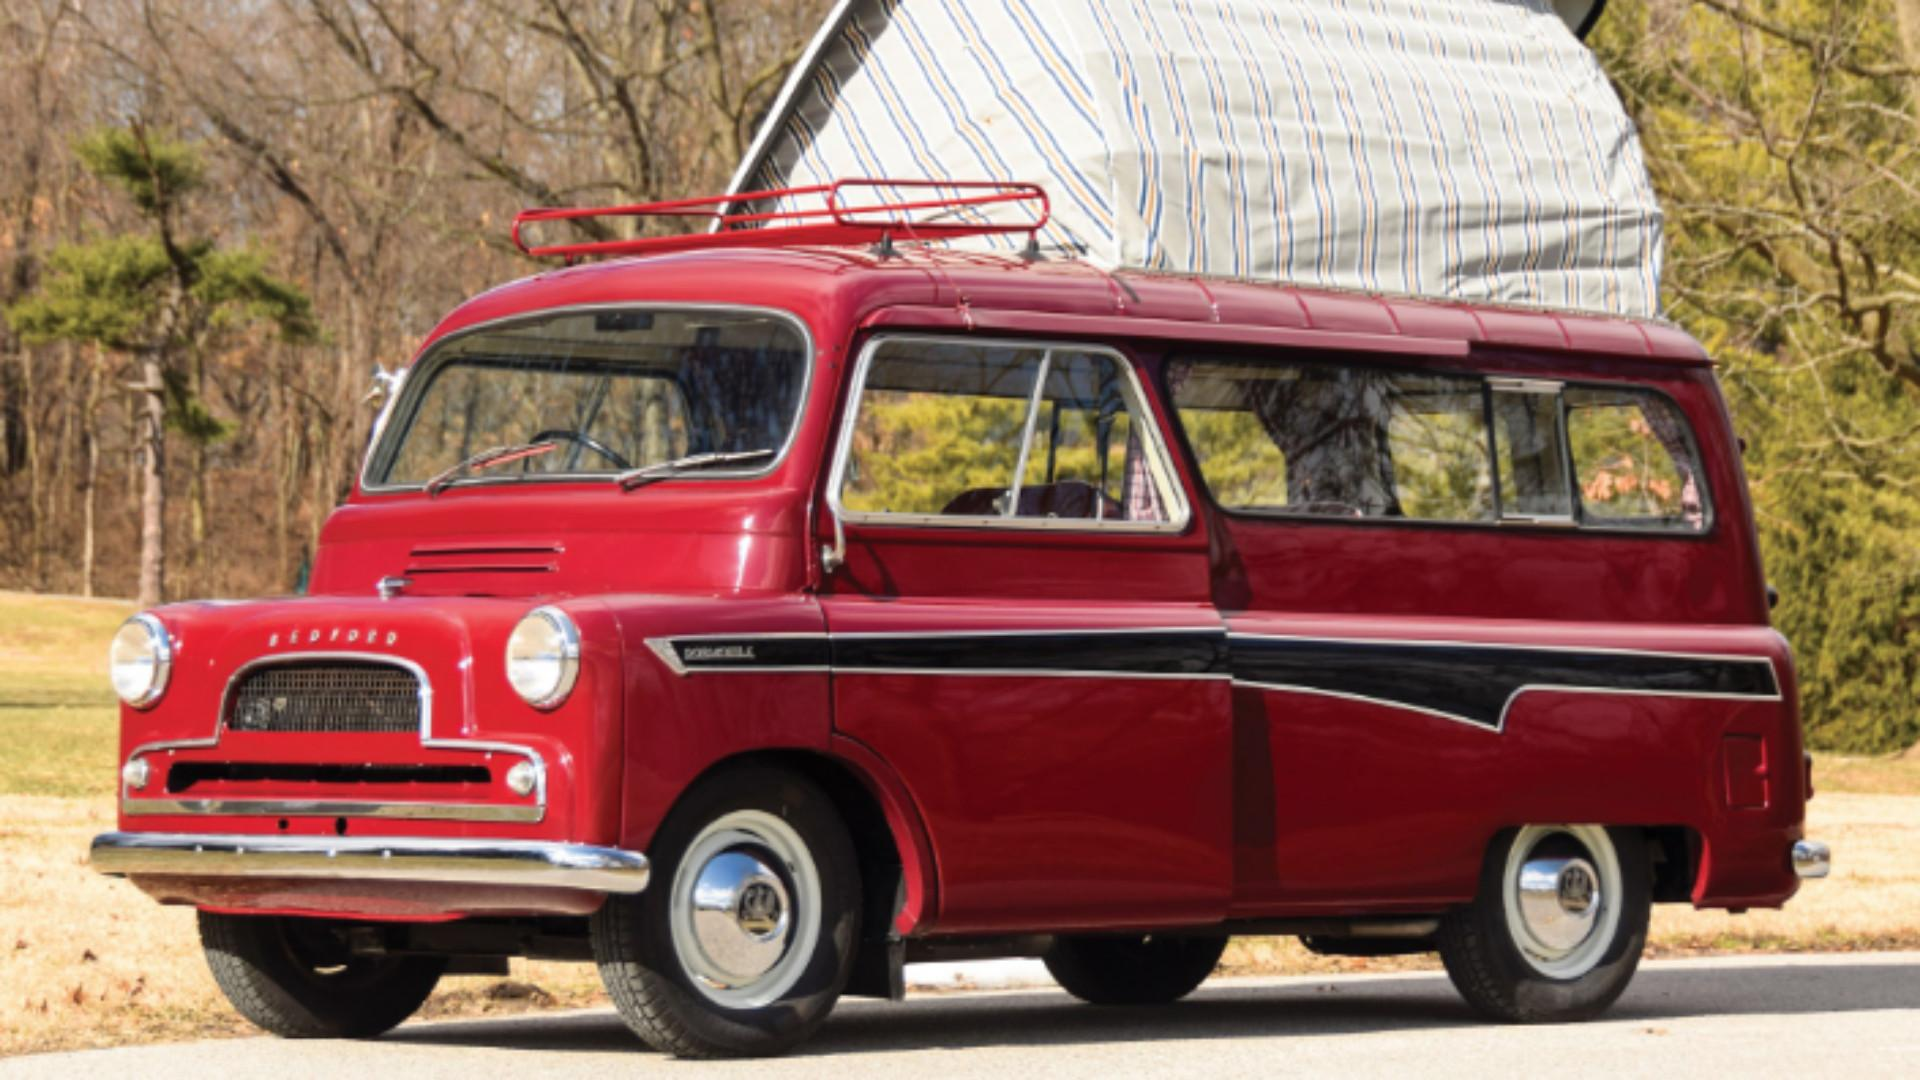 Carry On Camping In 1960s Style With This Bedford CA Dormobile